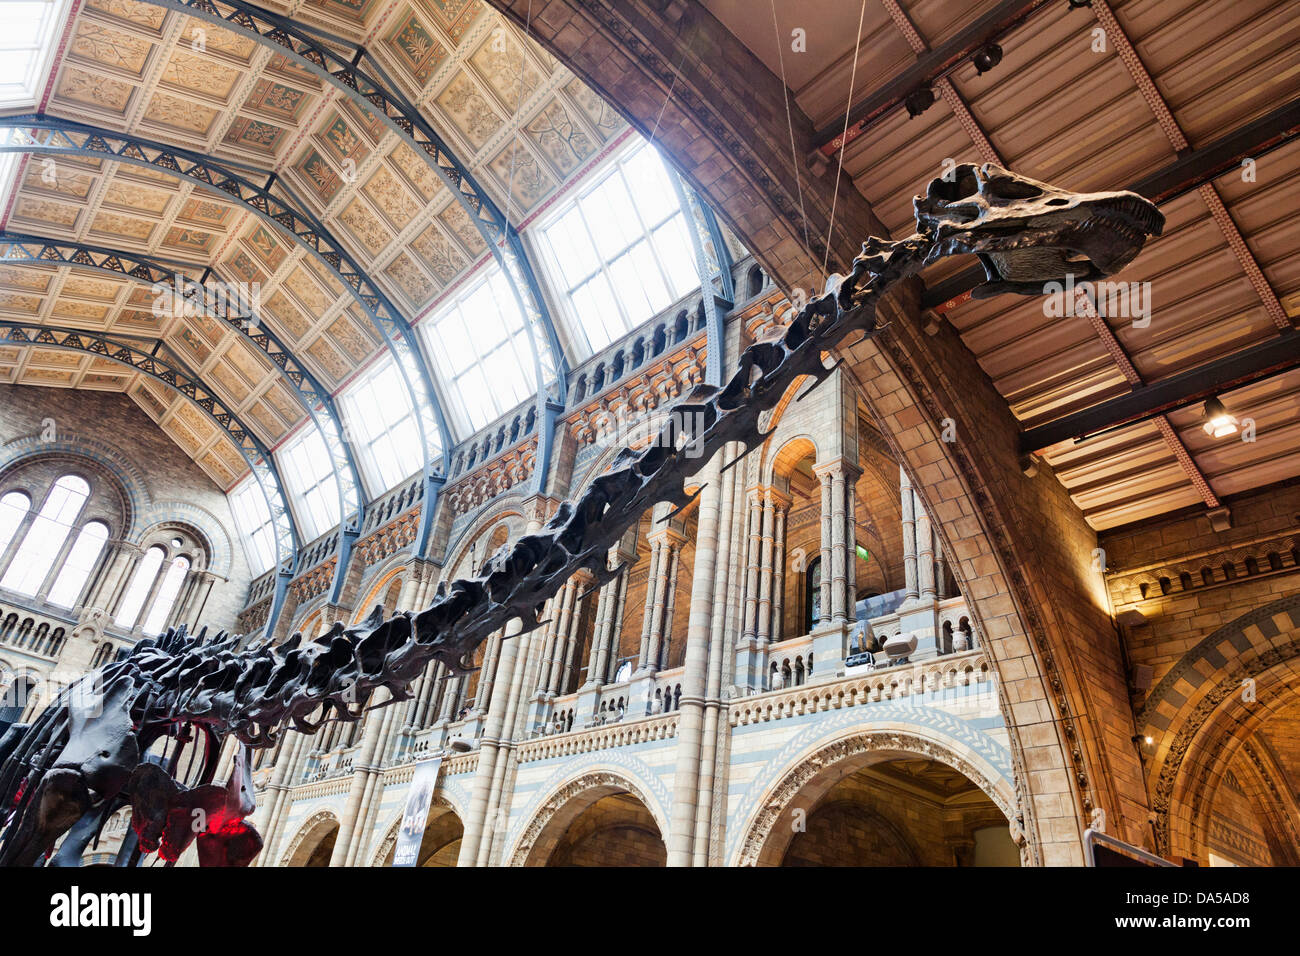 England, London, Kensington, Natural History Museum, Dinosaur - Stock Image